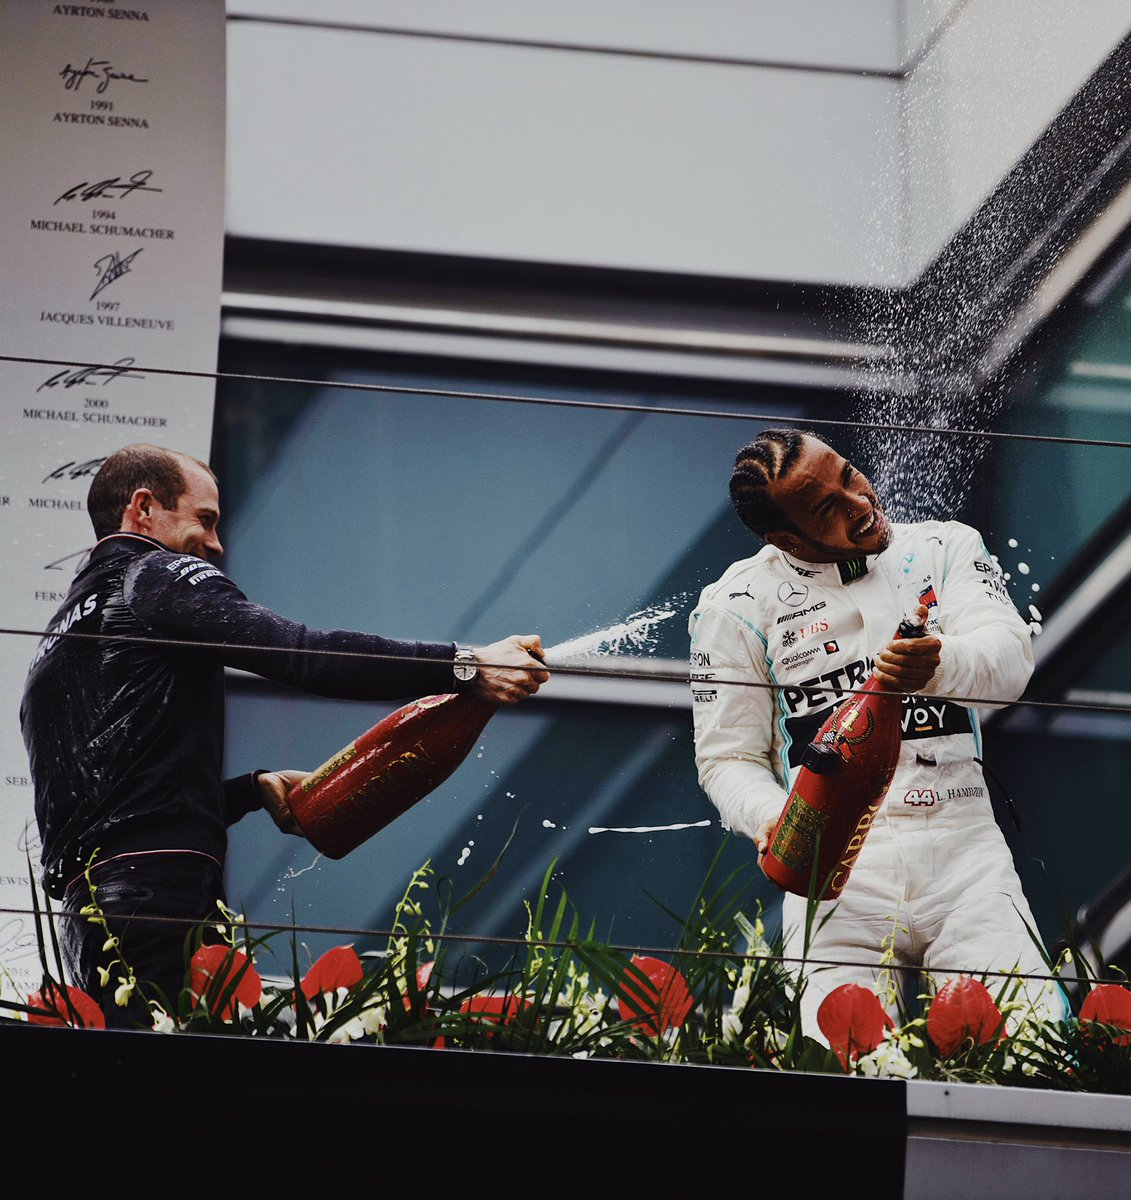 We got the 1000th. China, thank you for the incredible support and atmosphere, I'm so happy guys 🏆 . Huge thanks to everyone in the team, let's celebrate!! #P1 #TeamLHChina #Race1000 #ChineseGP @MercedesAMGF1